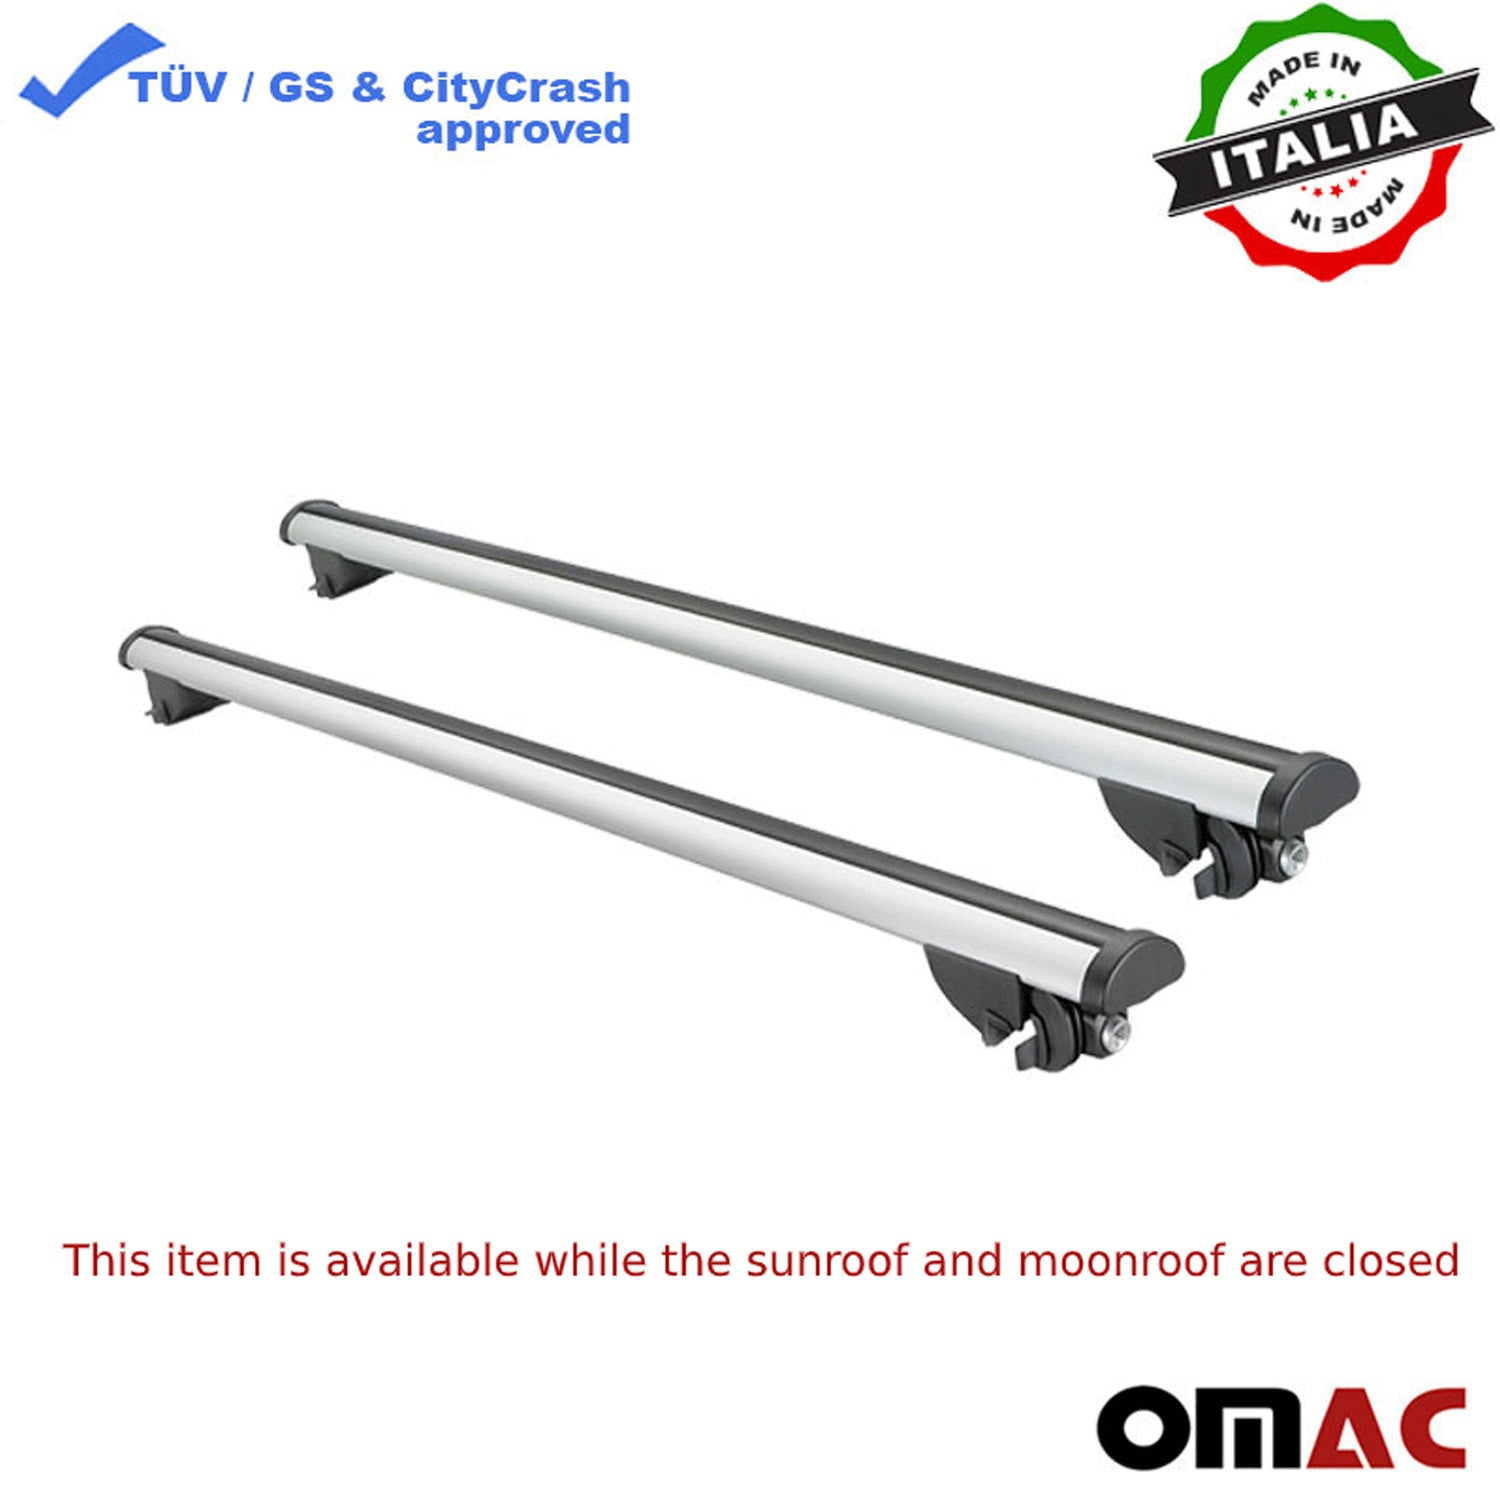 Fits Volvo XC90 2015-2021 Roof Rack Cross Bars Luggage Carrier Silver Set